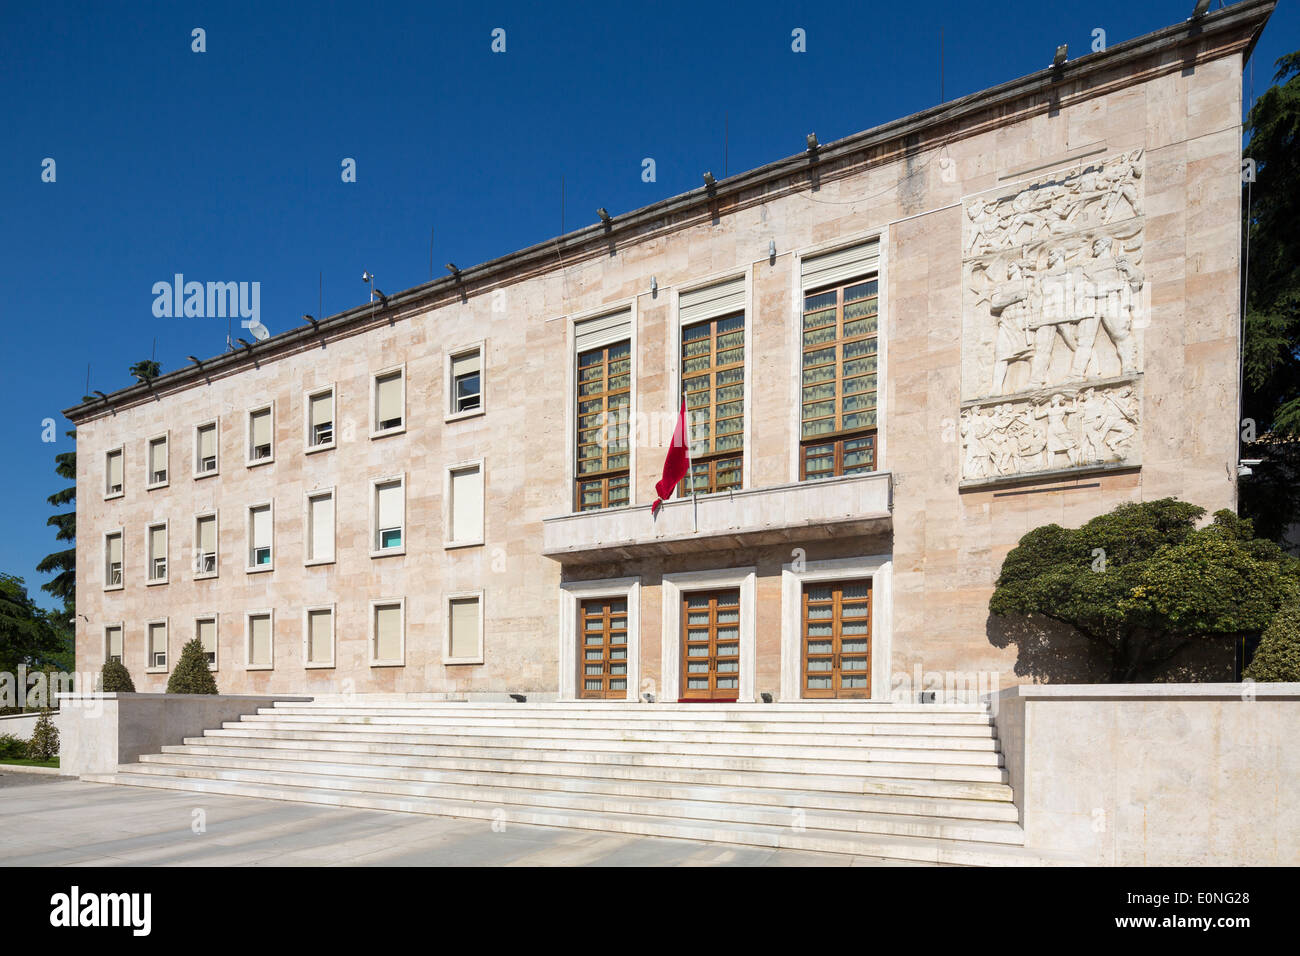 Residence of the prime MInister, Tirana, Albania - Stock Image